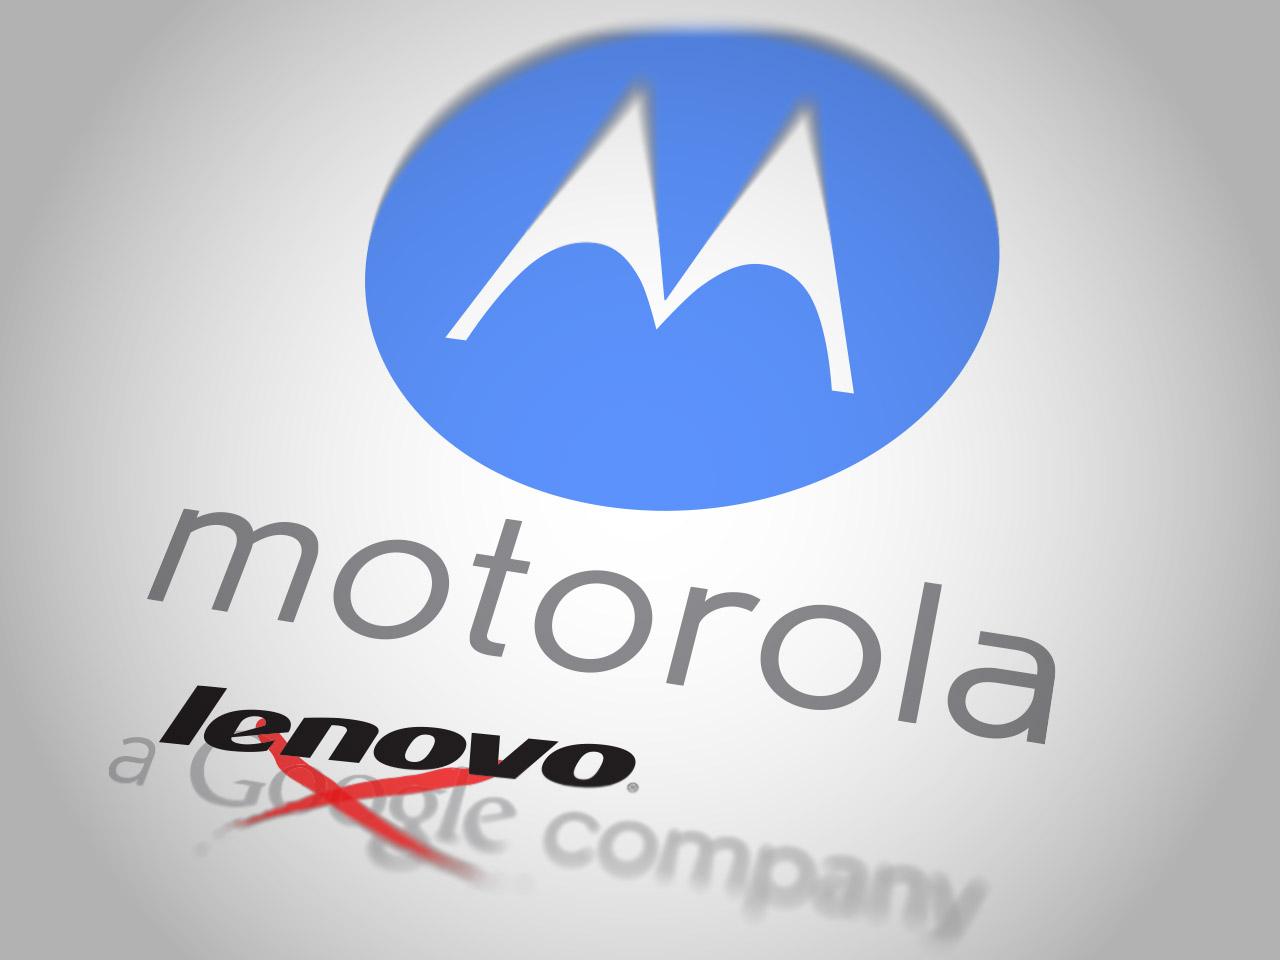 What DidGoogle By The Motorola Sale To Lenovo?